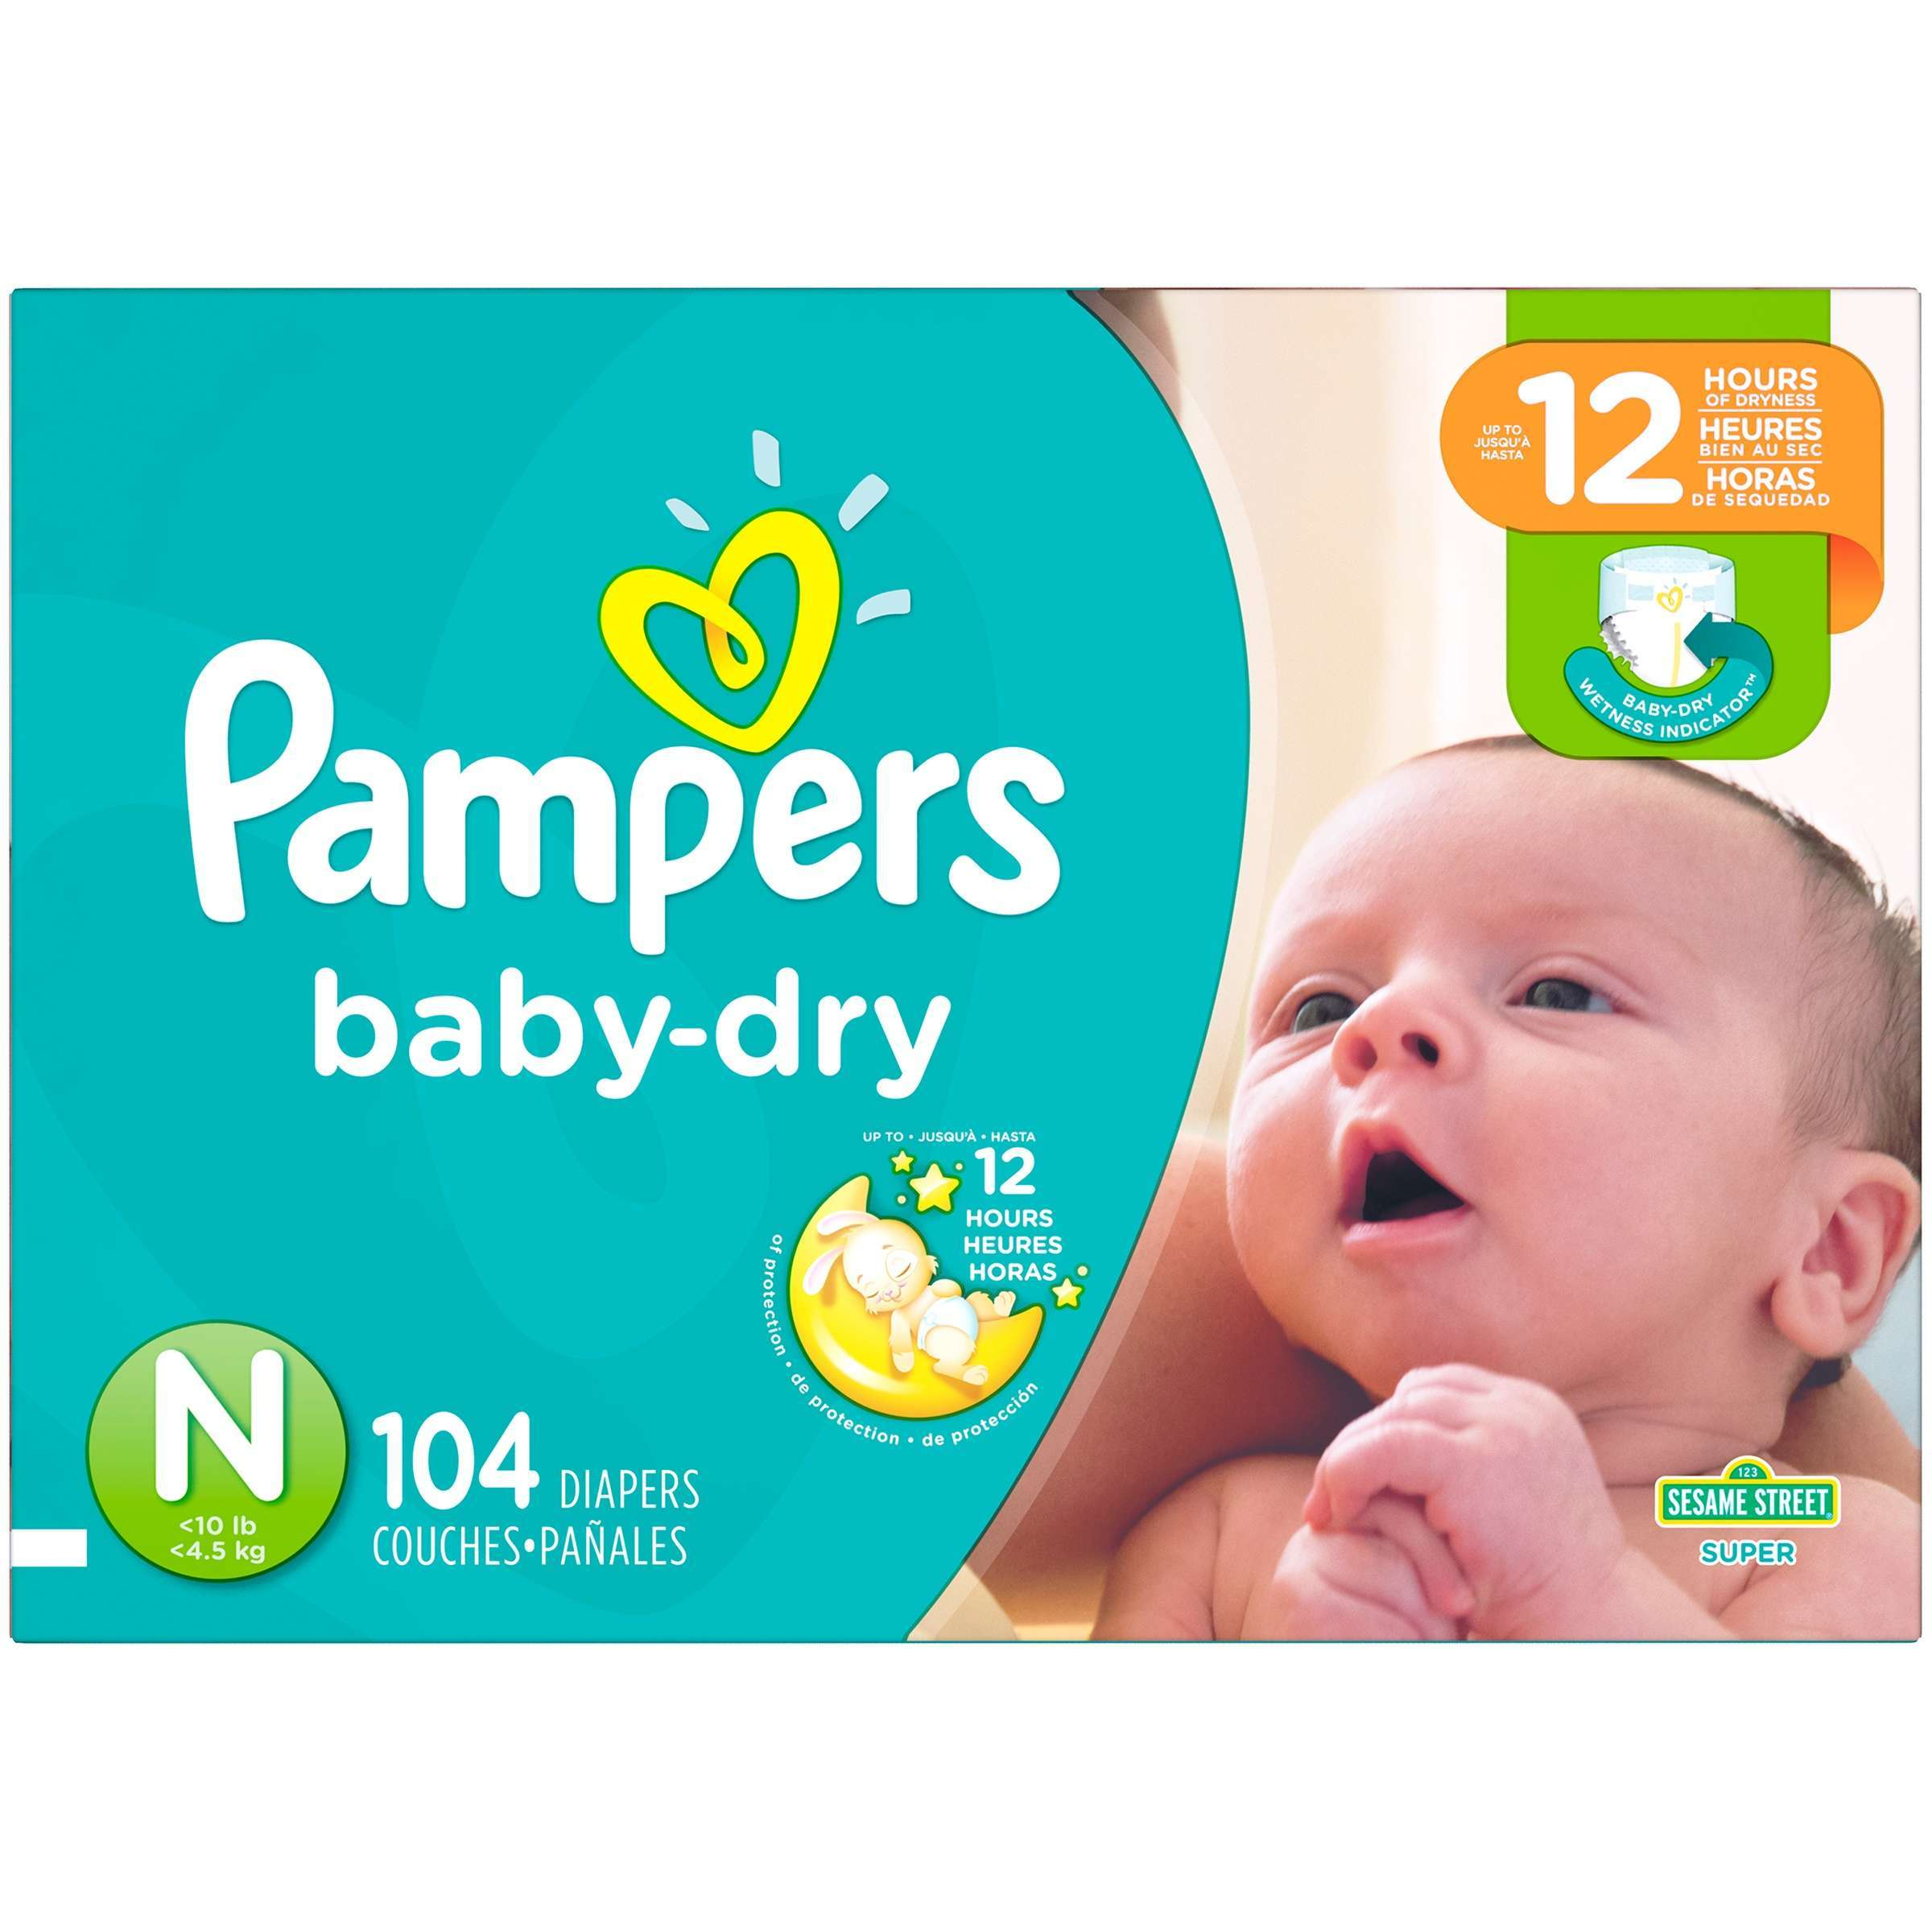 Amazon is offering the Count Pampers Baby-Dry Diapers (Size 3) for $ with Free Shipping when you clip the $ Off Coupon and checkout via Subscribe & Save.